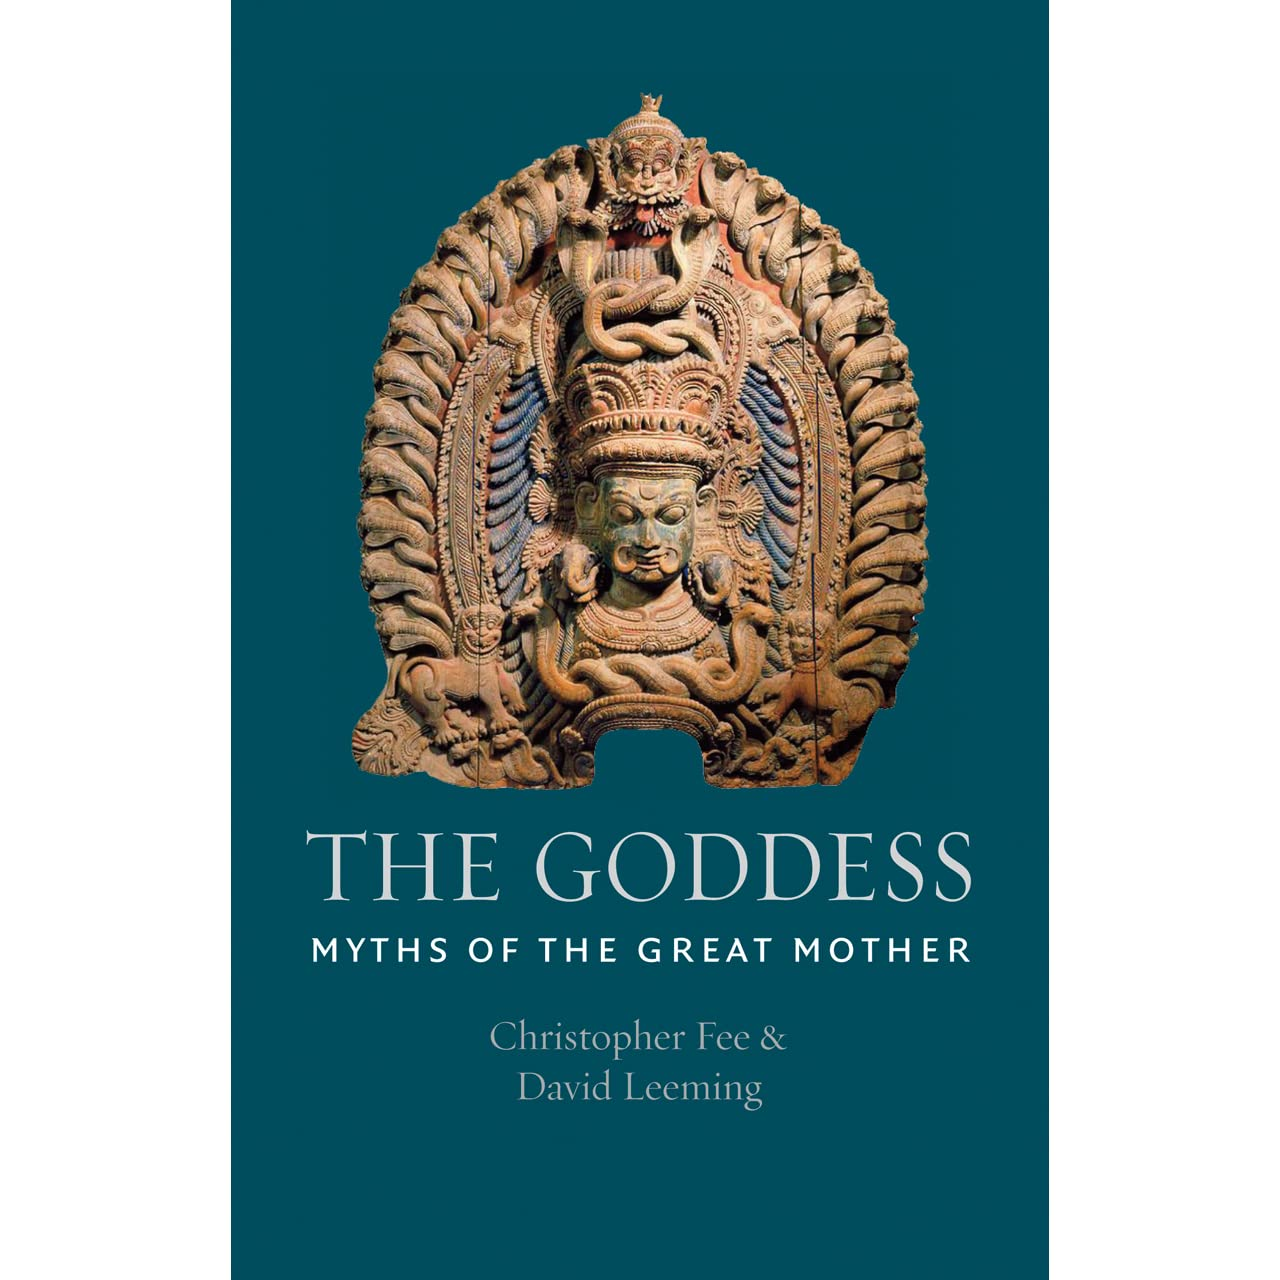 The Goddess: Myths of the Great Mother by David Leeming